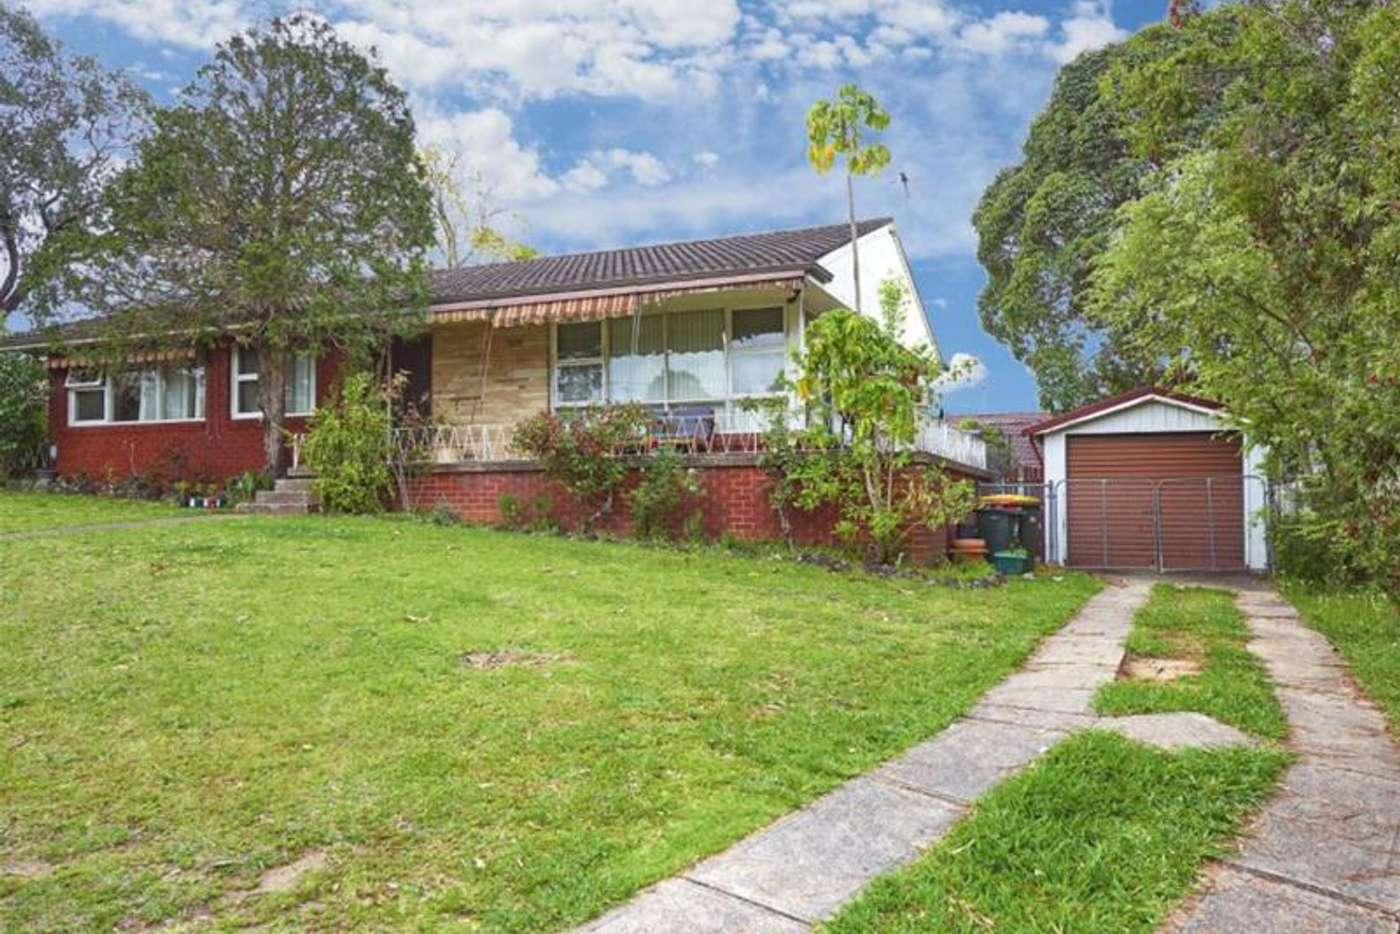 Main view of Homely house listing, 48 Meryll Avenue, Baulkham Hills NSW 2153